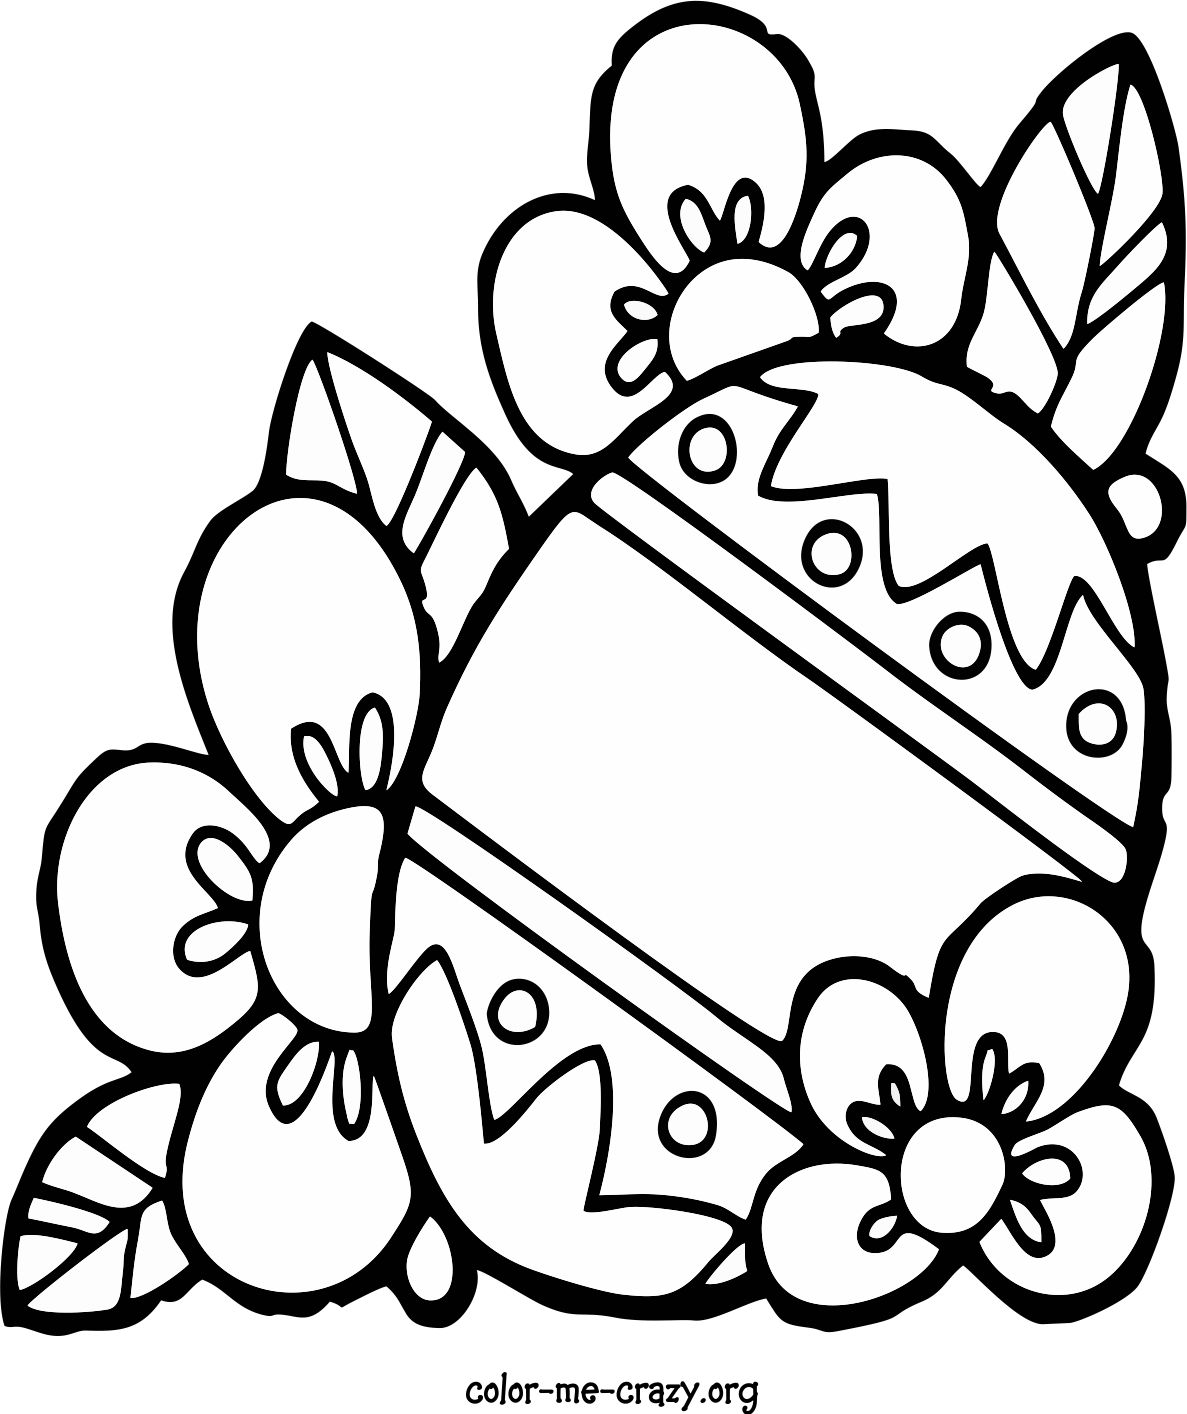 color pages for easter colormecrazyorg easter coloring pages for easter color pages